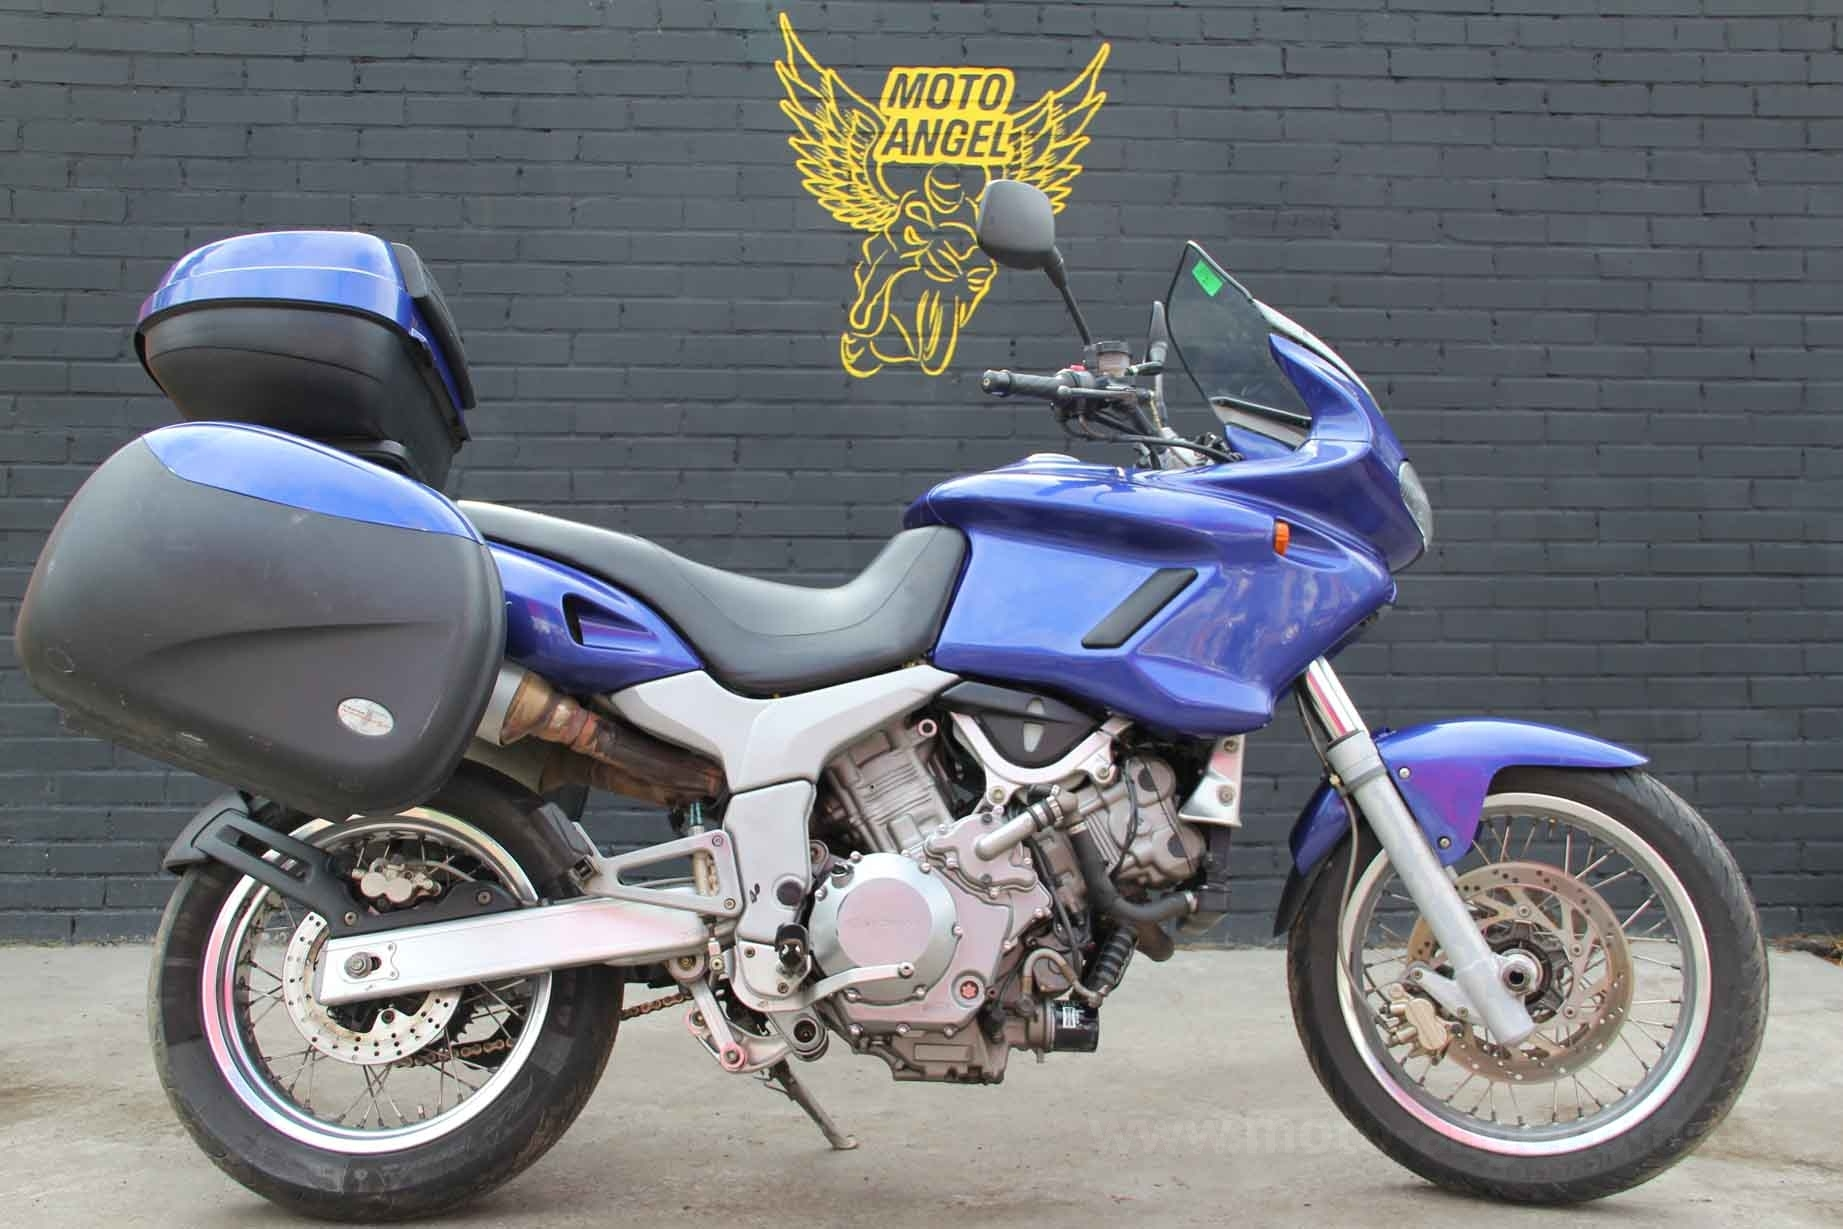 Cagiva Navigator 1000 2001 images #67698